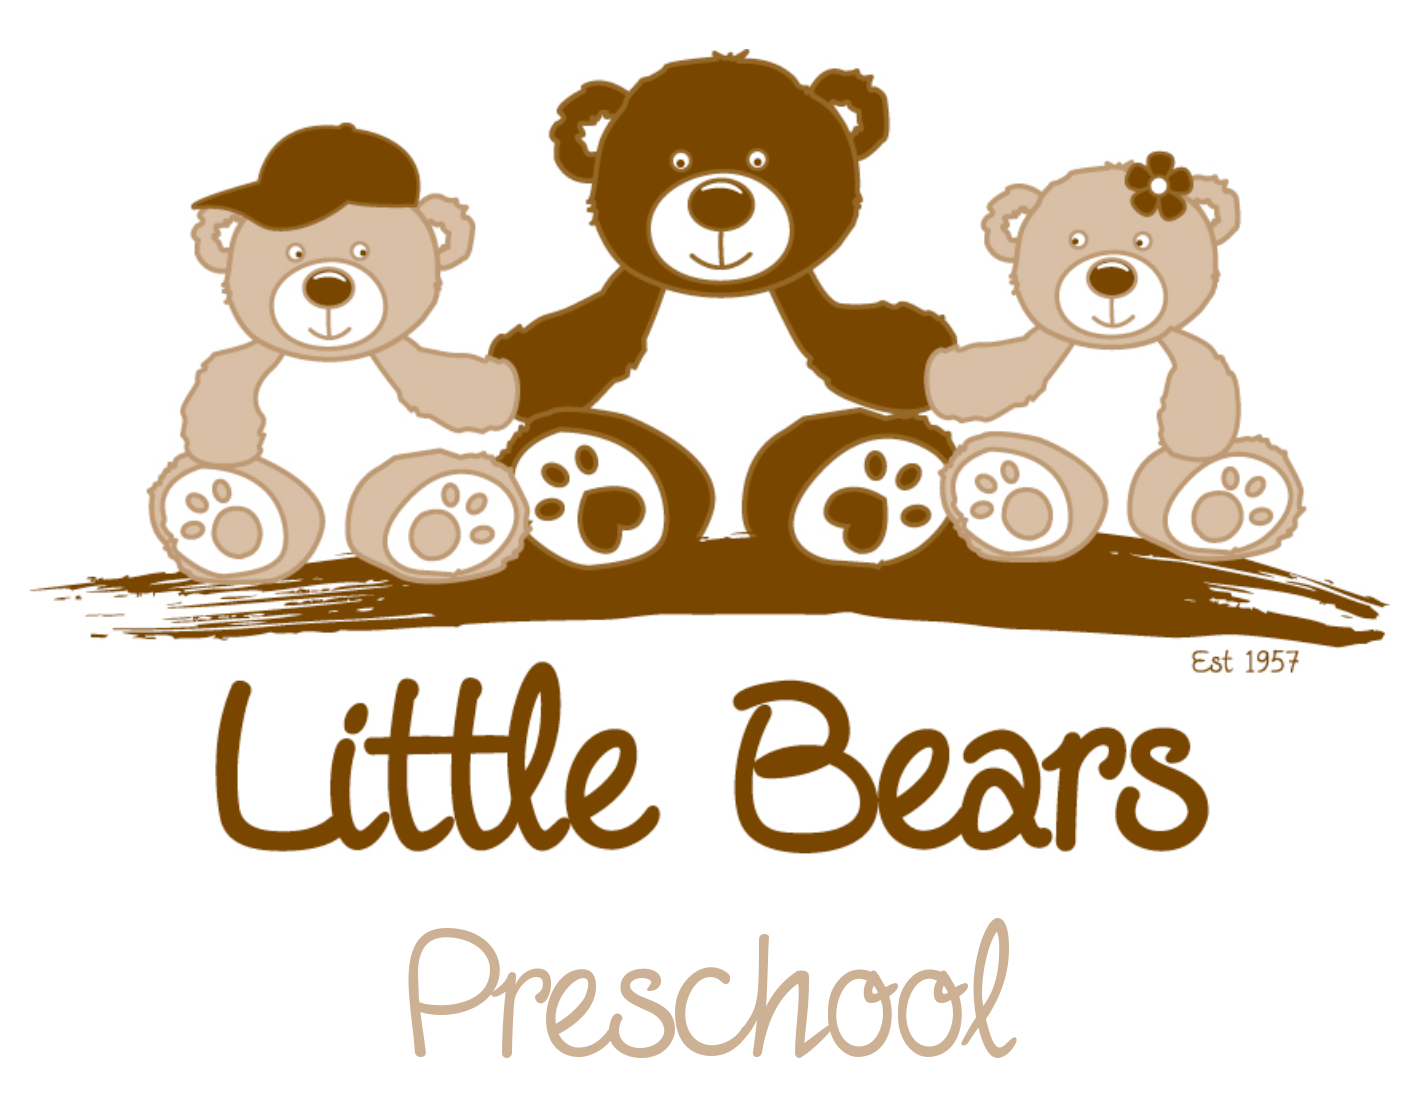 Little Bears Preschool - Castle Rock, CO 80104